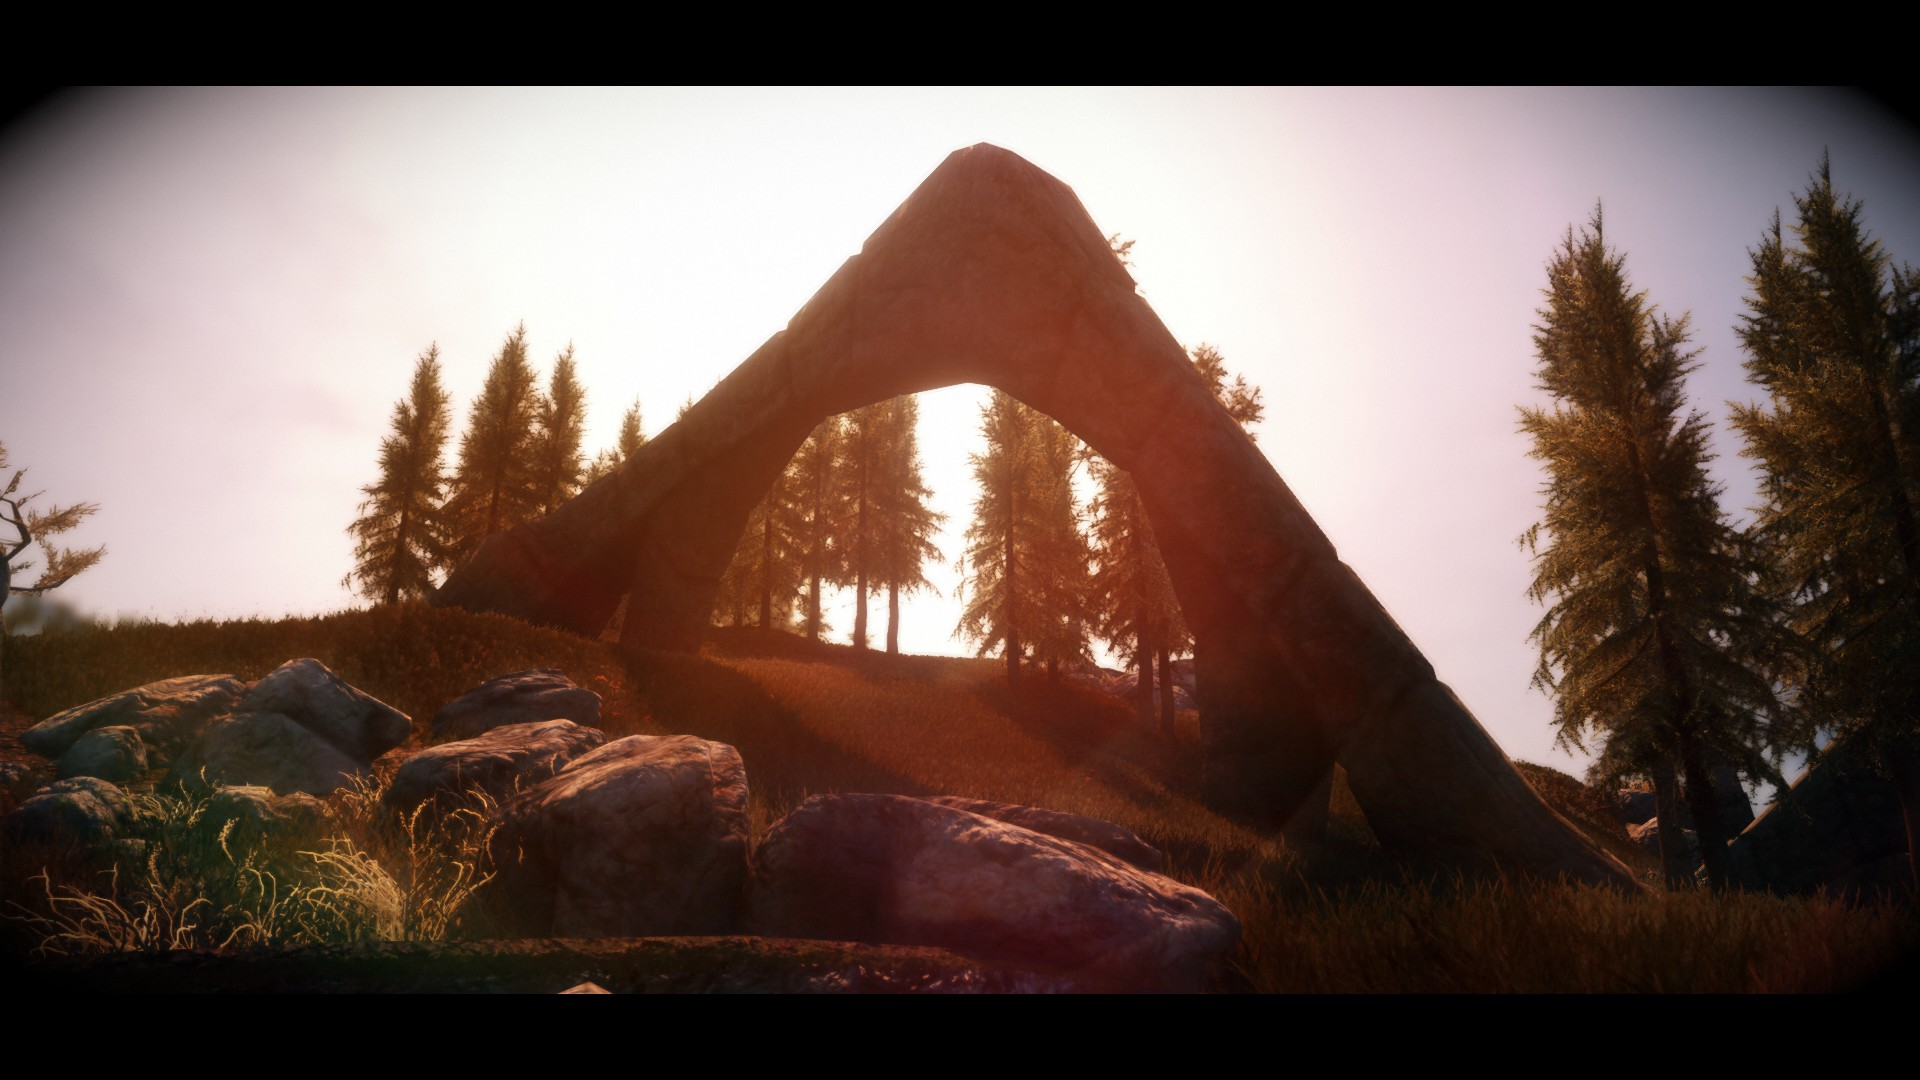 Rose Glen North Dakota ⁓ Try These Skyrim Se Nexus Rudy Enb